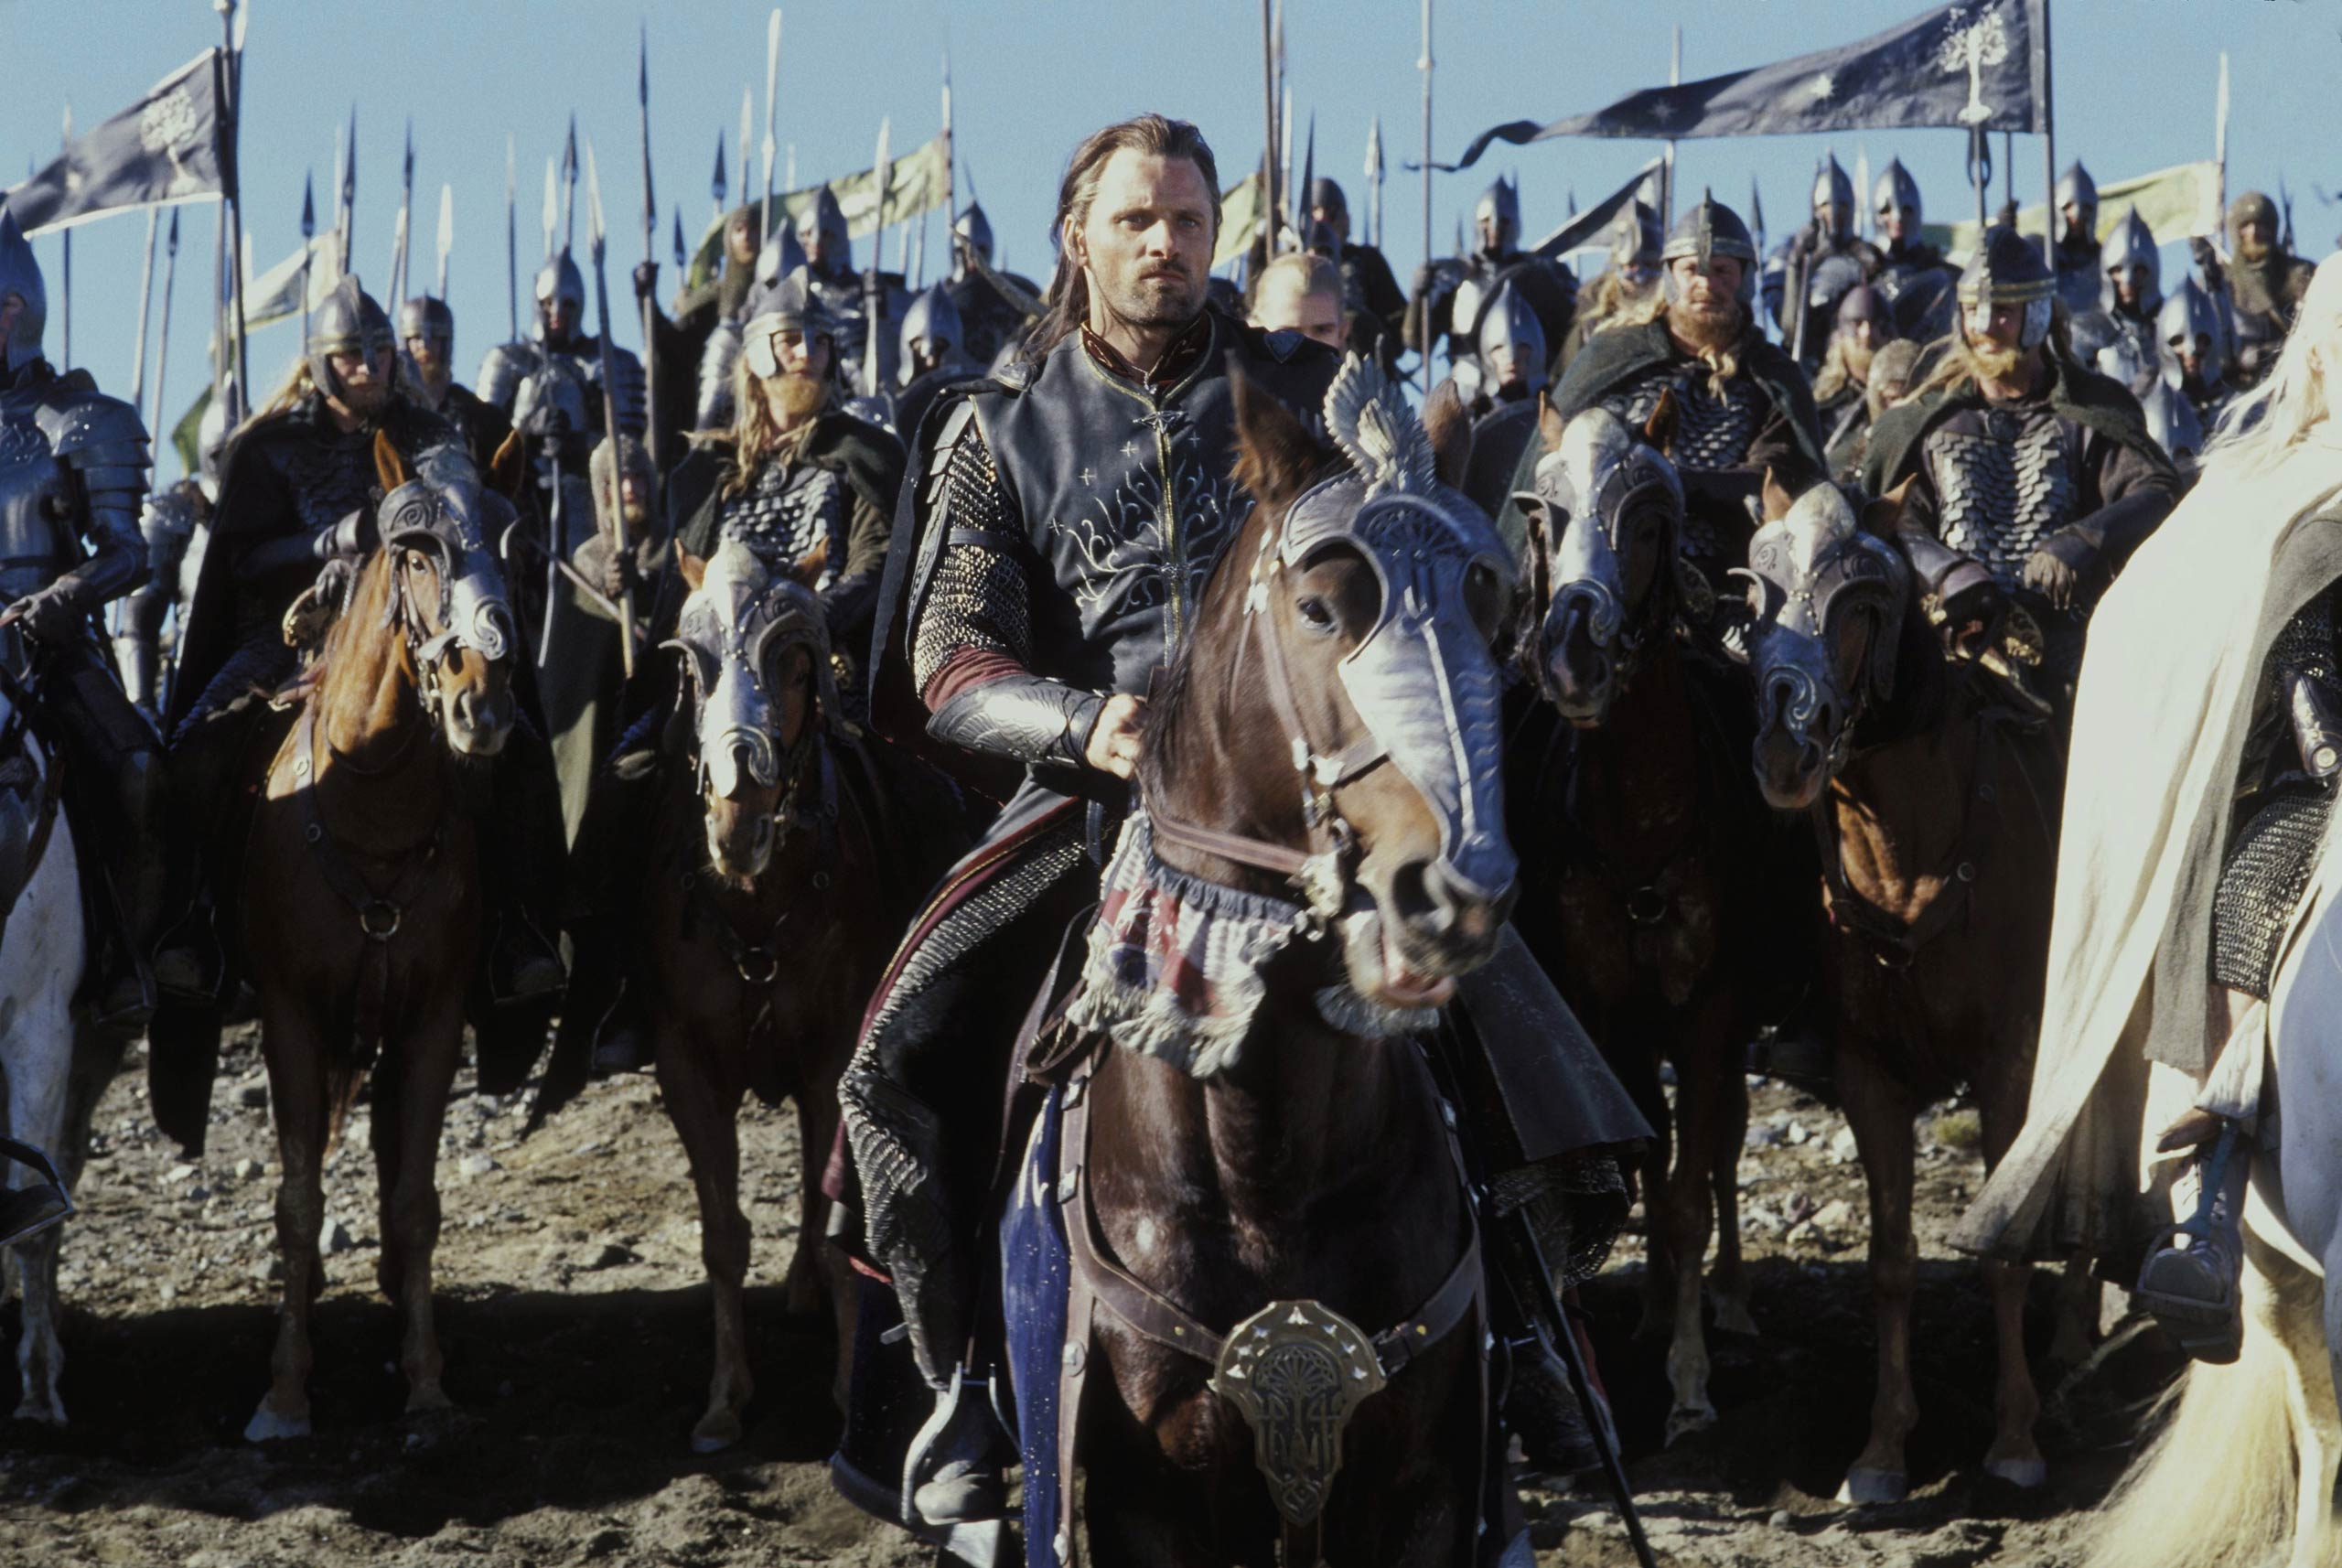 <i>The Lord of the Rings: The Return of the King</i>, the final installment of the <i>Lord of the Rings</i> trilogy, released in 2003, features the final battle for Middle Earth.